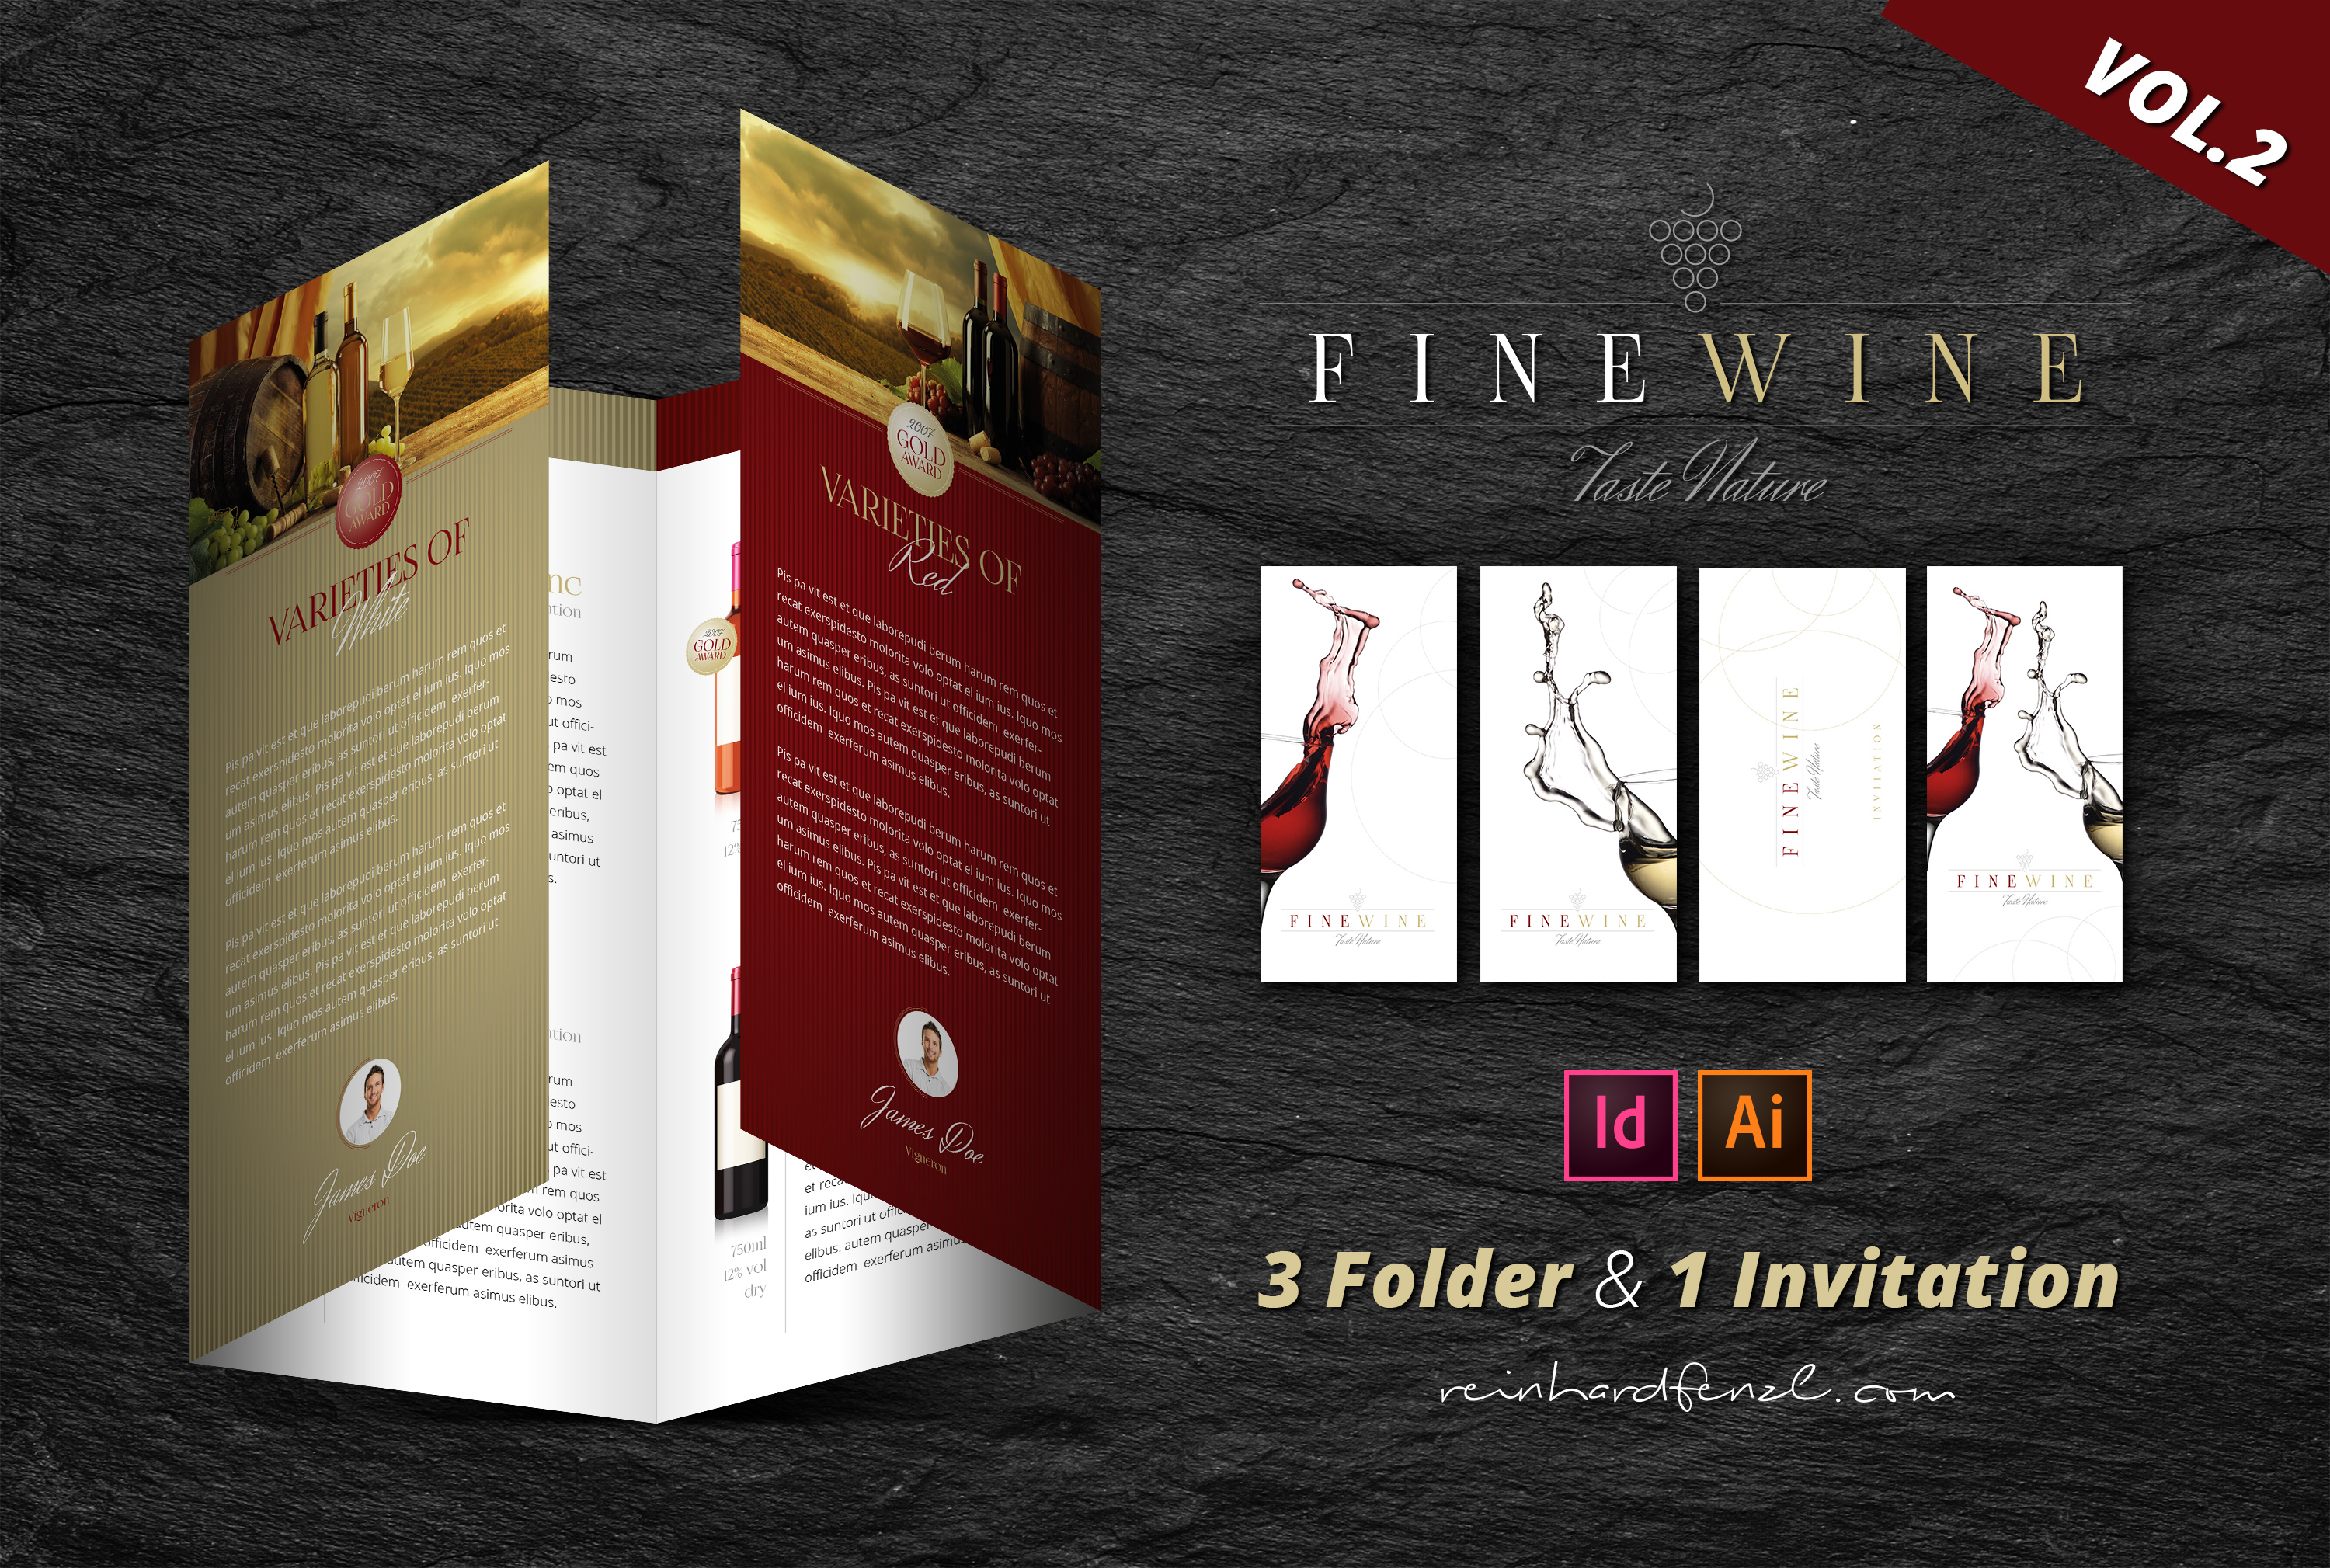 Fine Wine Vol.2 - Folder & Invitation example image 1